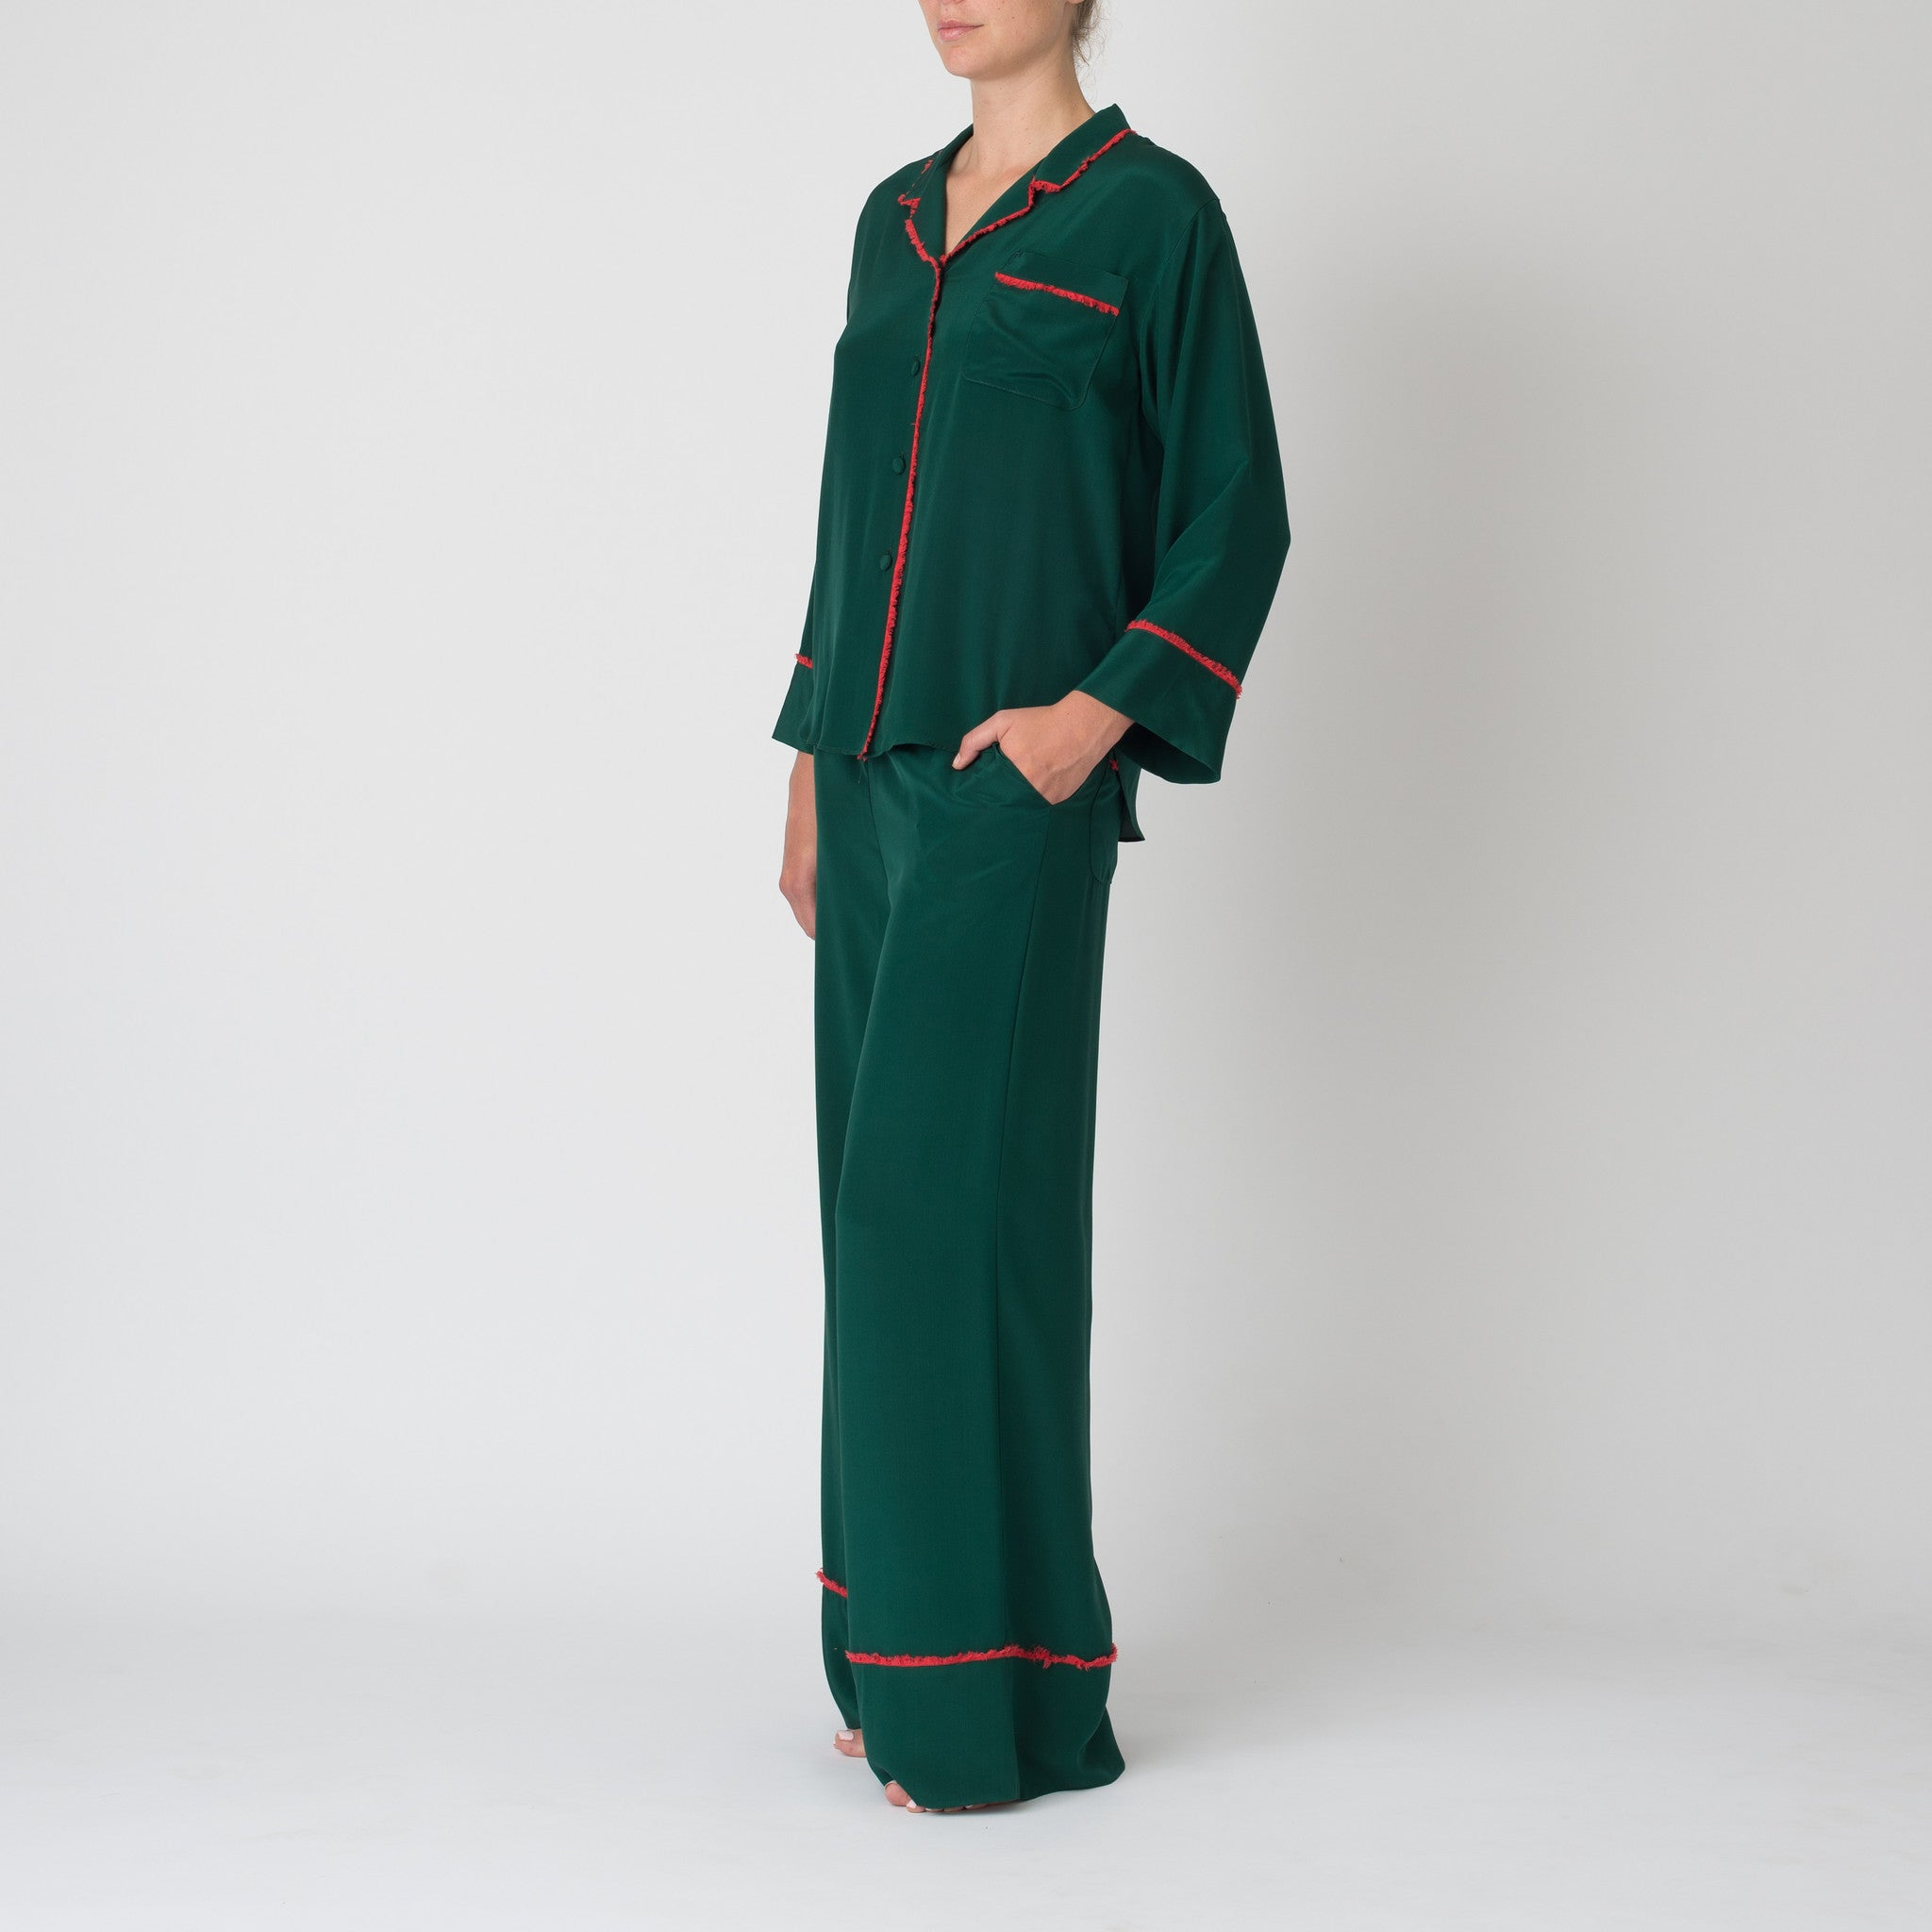 Matisse in Emerald with Coral Fringe